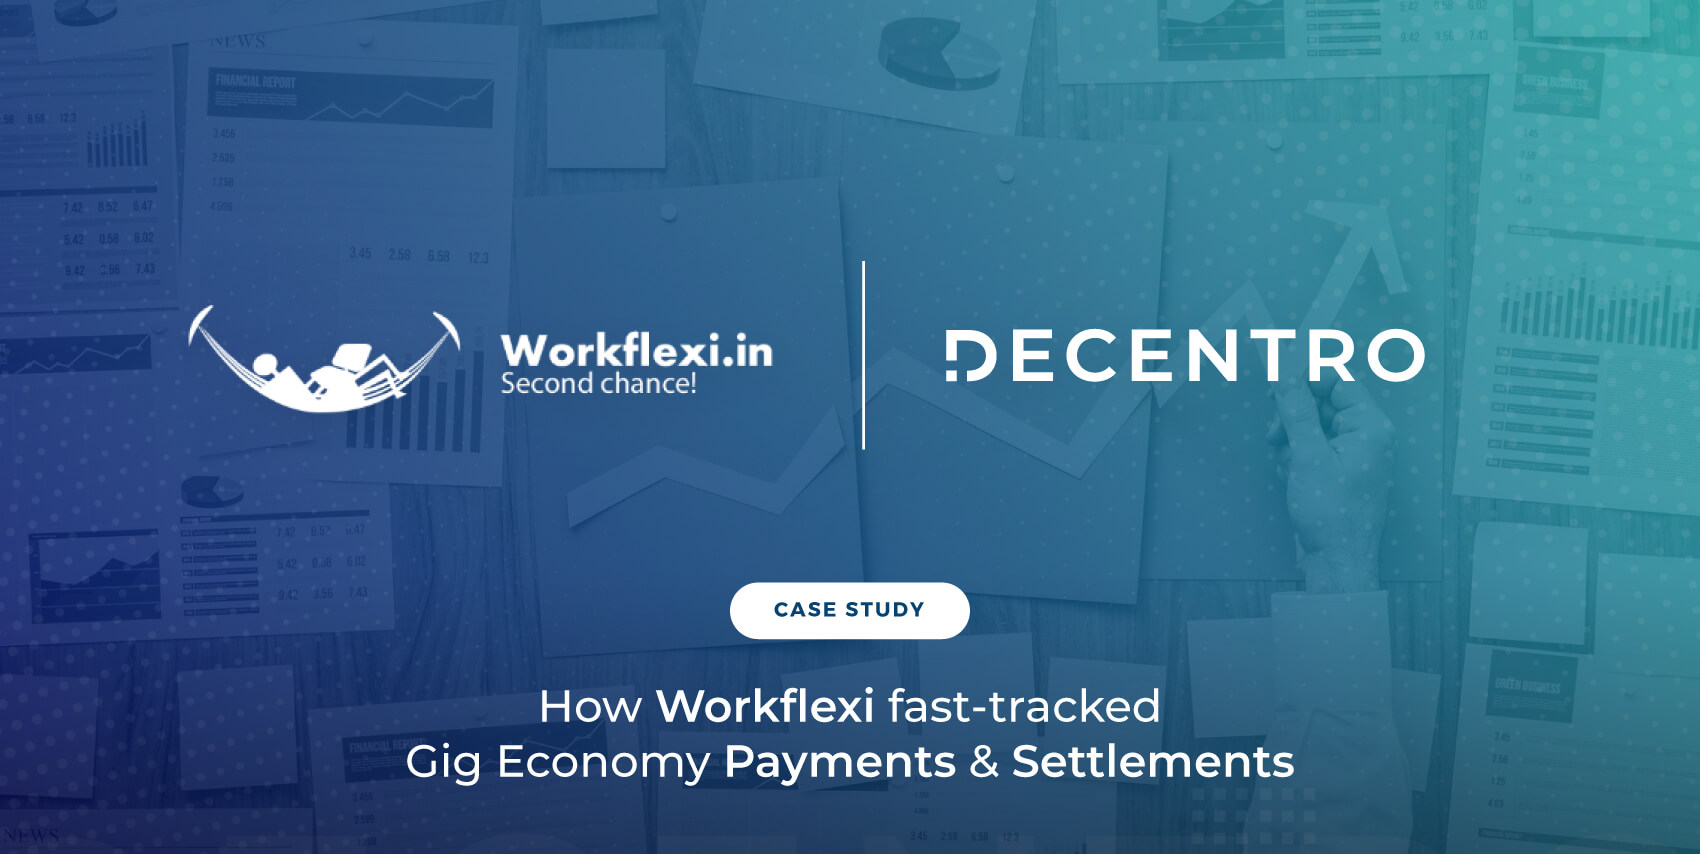 How Workflexi Fast-tracked Gig Economy Payments & Settlements.